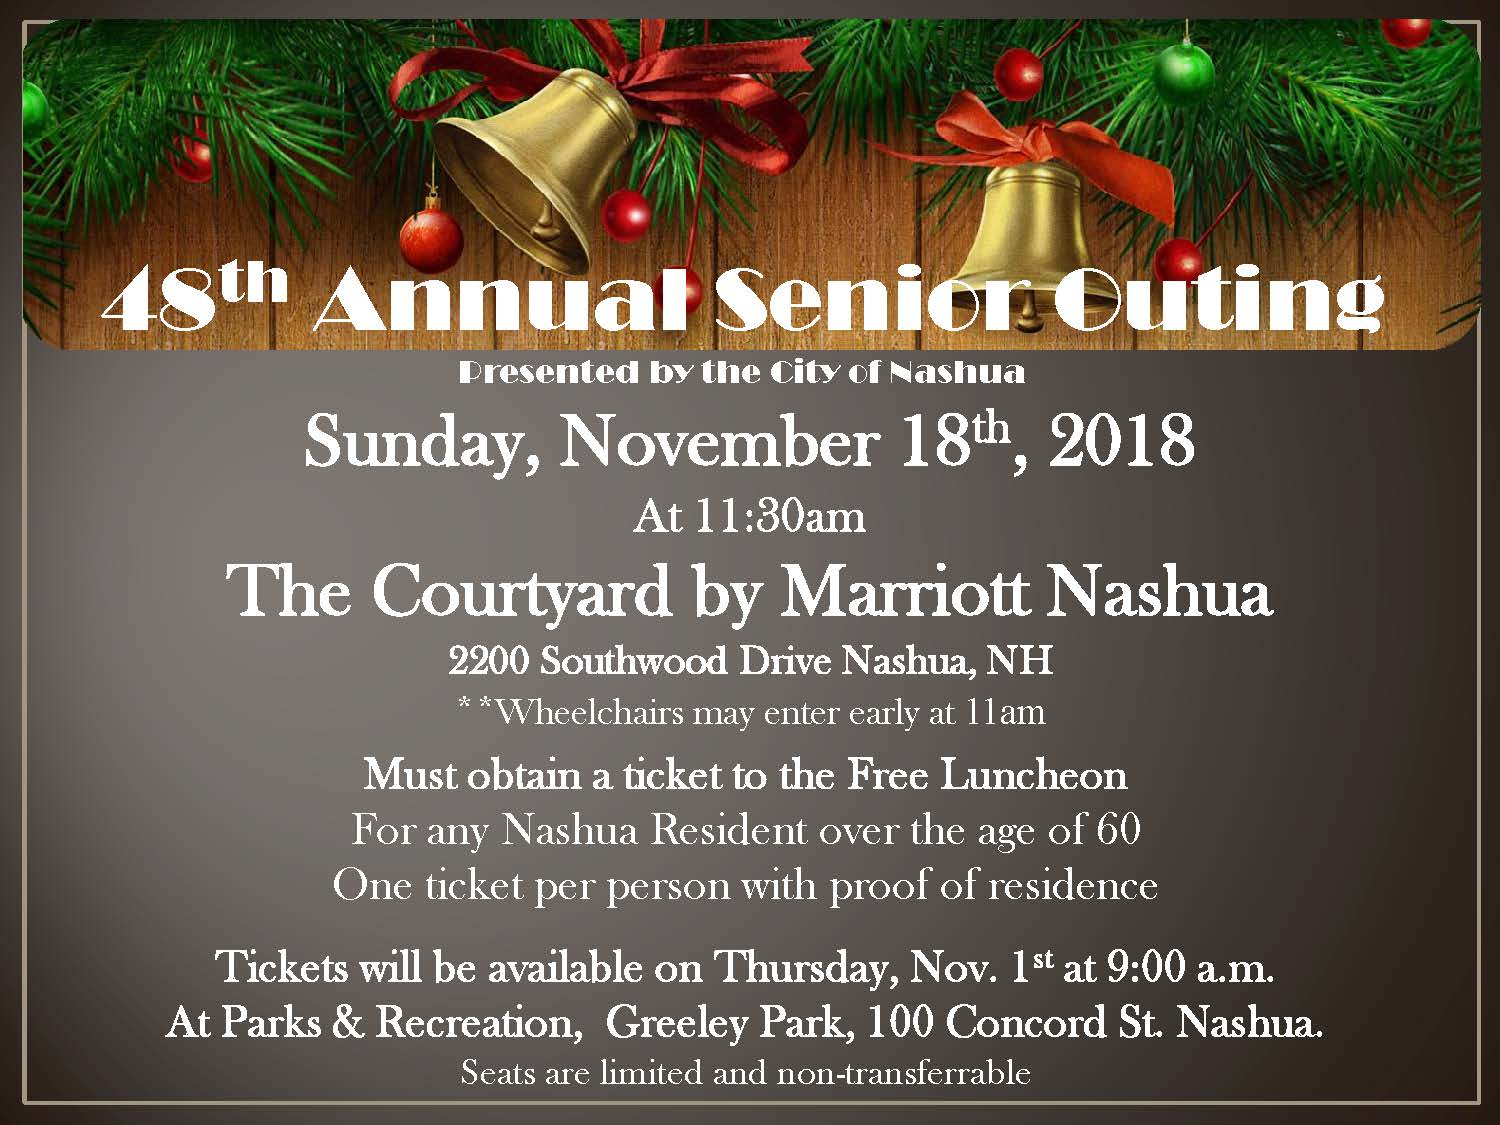 Flyer with brown background and bells/tinsel above, event details in white font